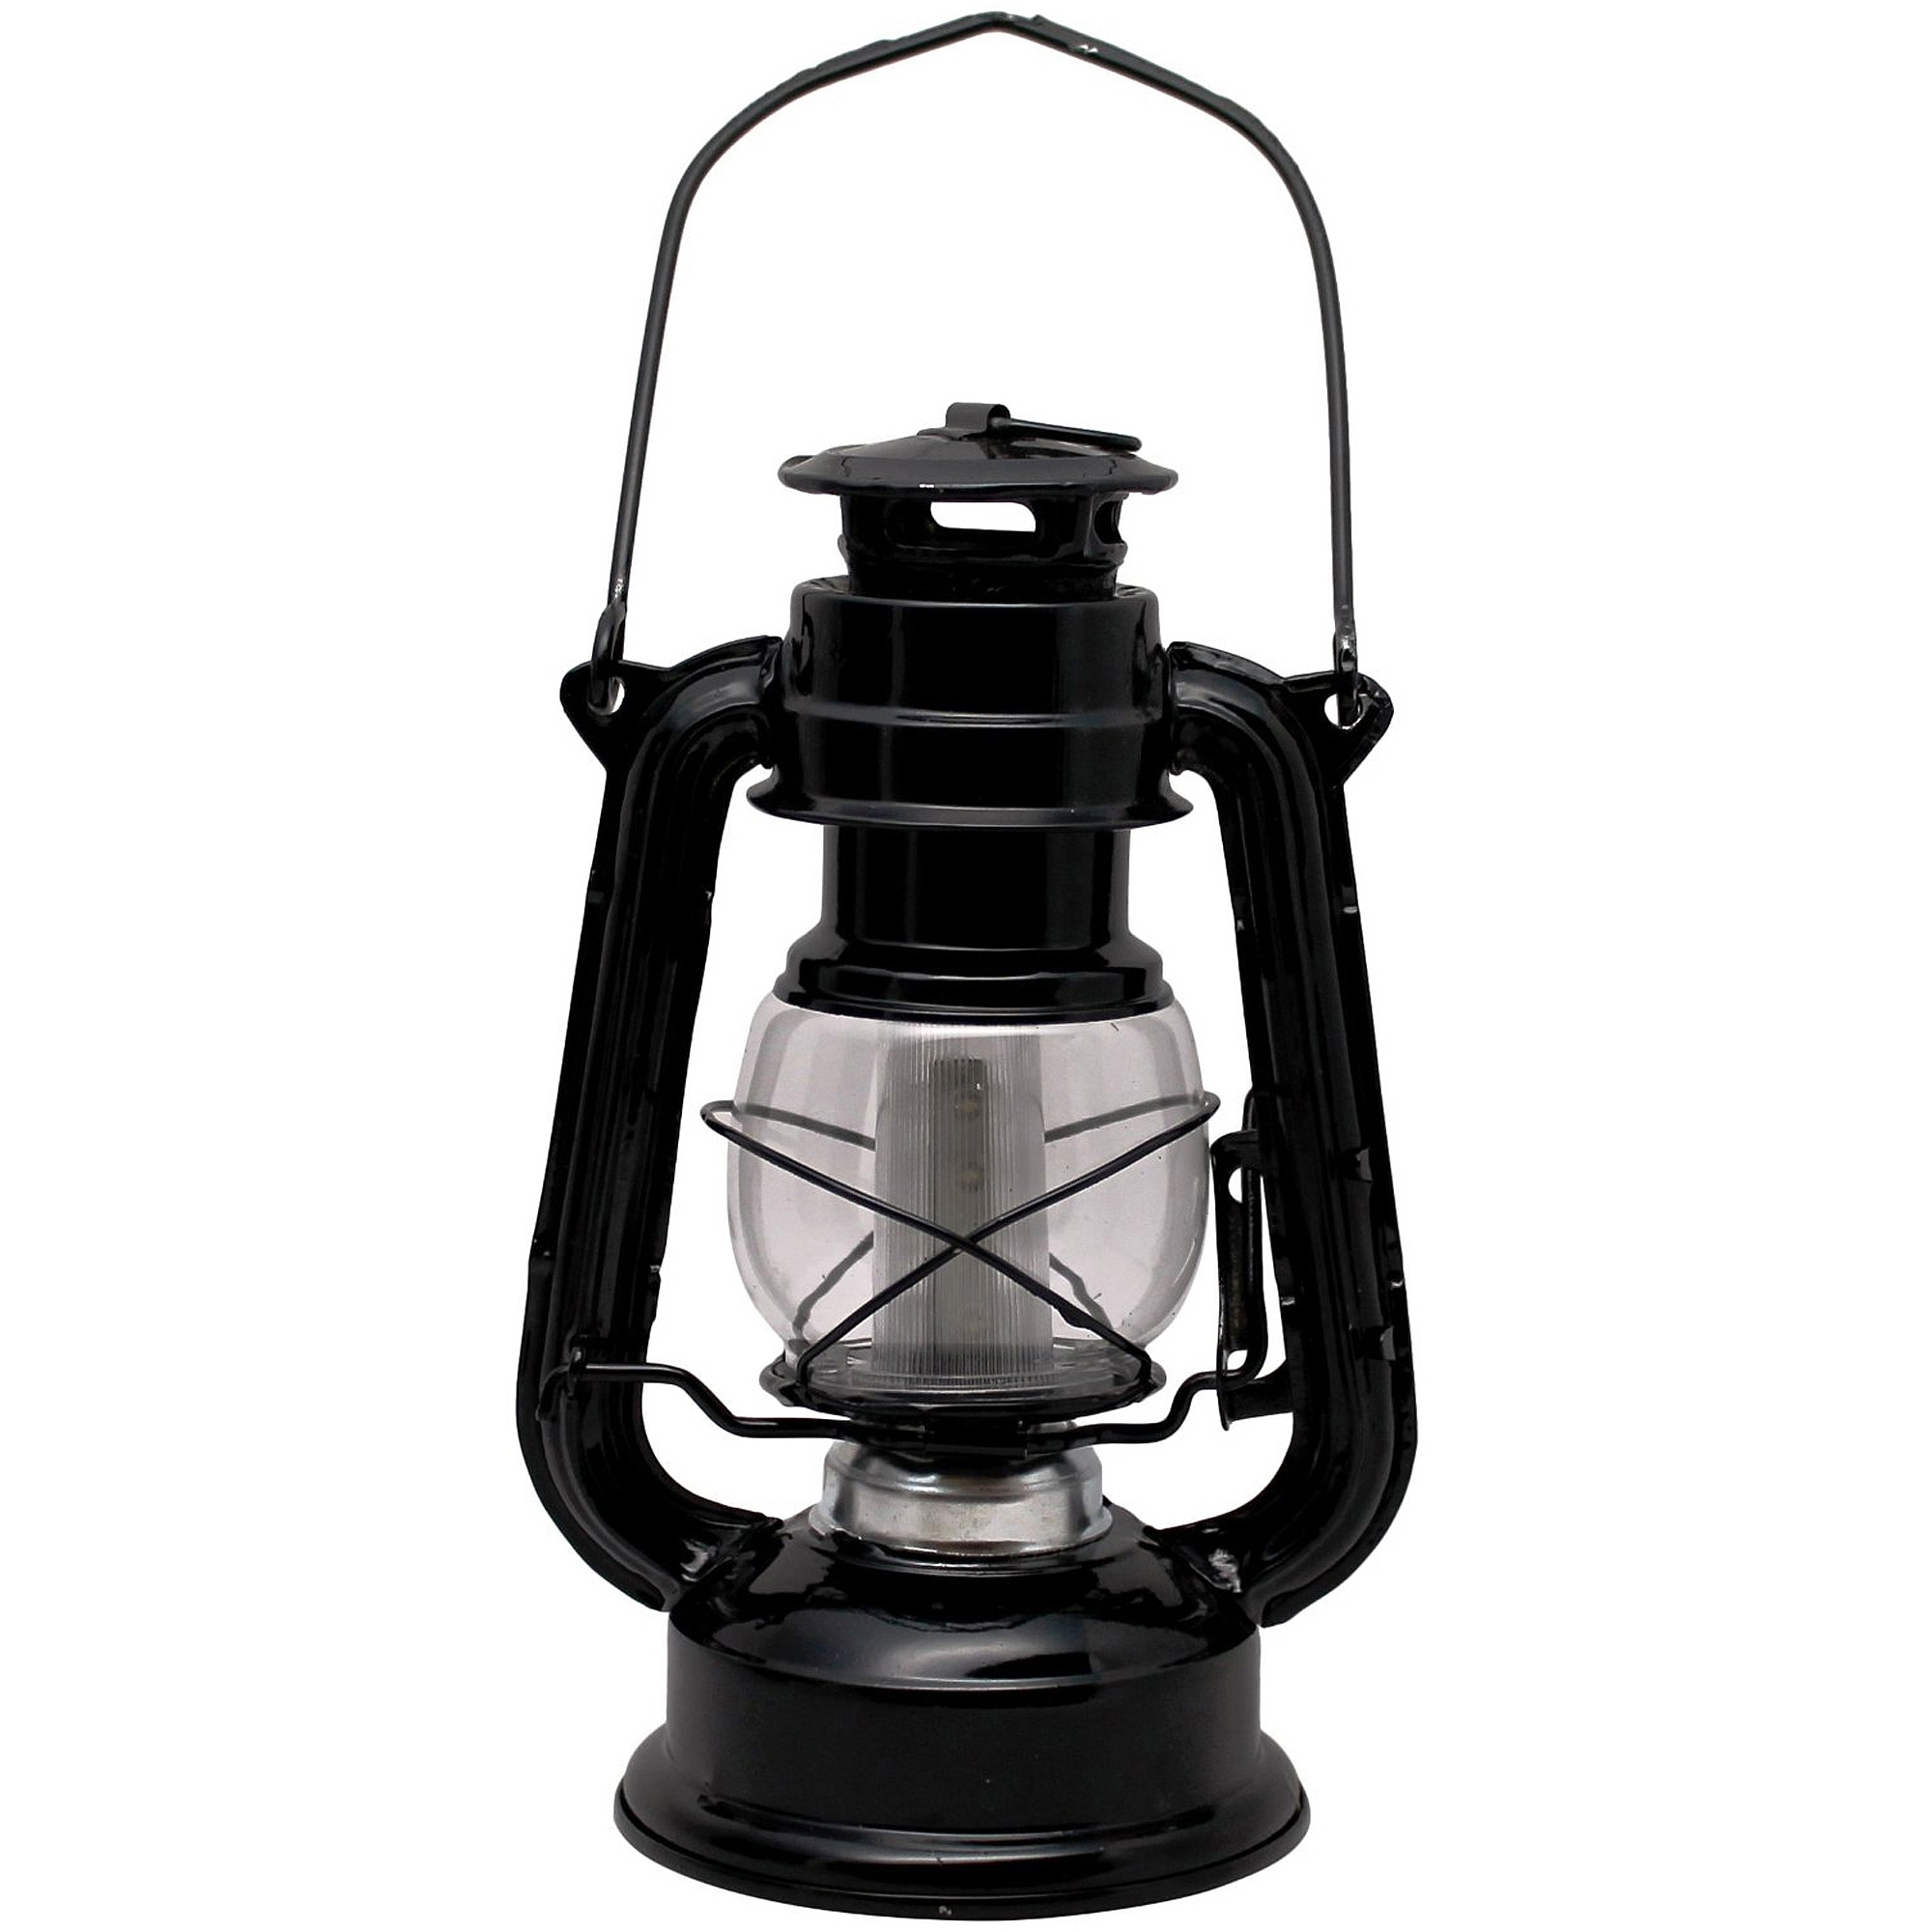 Sentry Railroad 12 Led Lantern, Black – Walmart Inside Outdoor Railroad Lanterns (View 7 of 20)